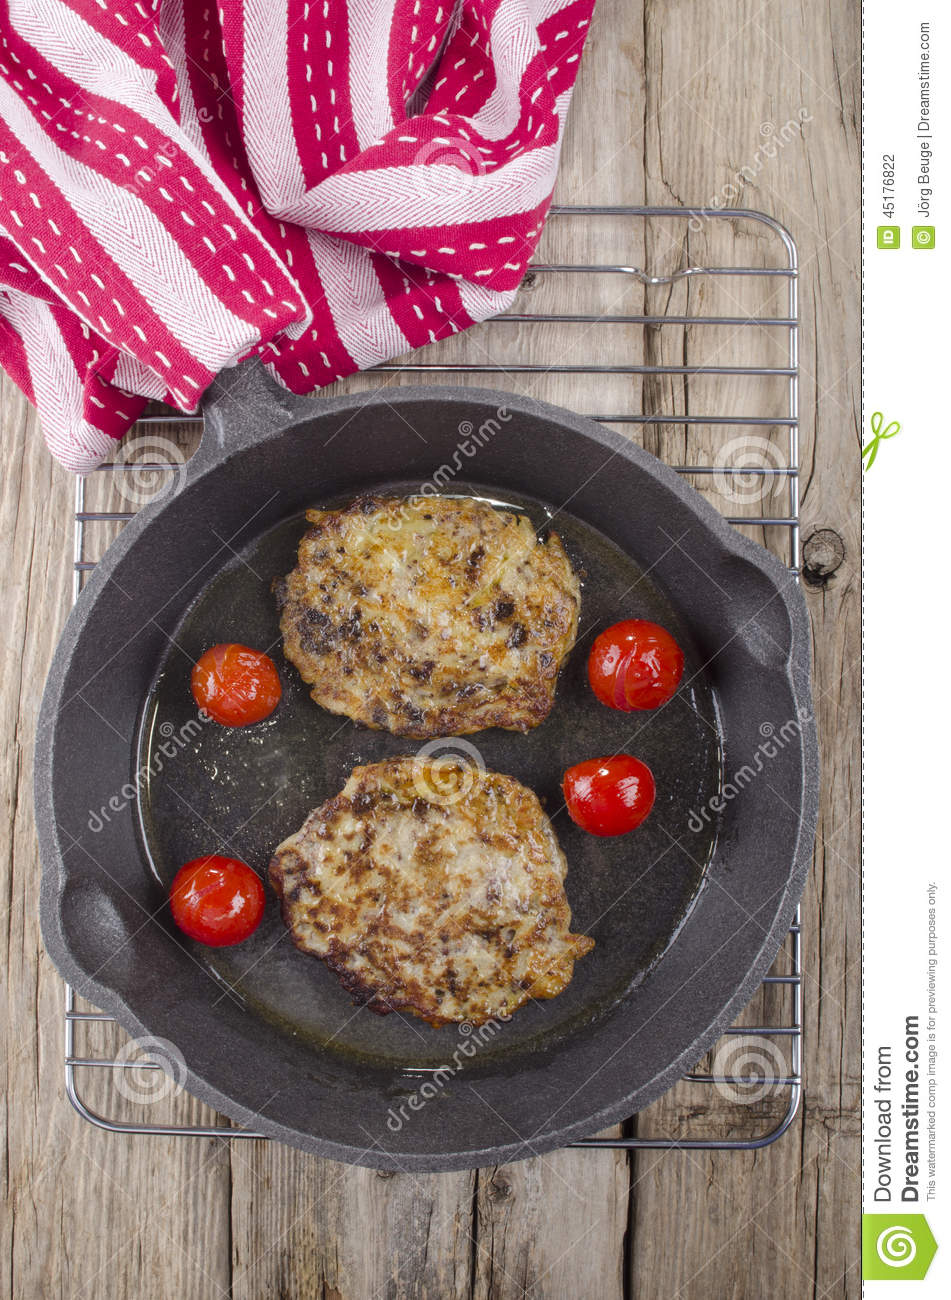 ... pan cake recipes pan boxty boxty pan cakes potato boxty boxty and